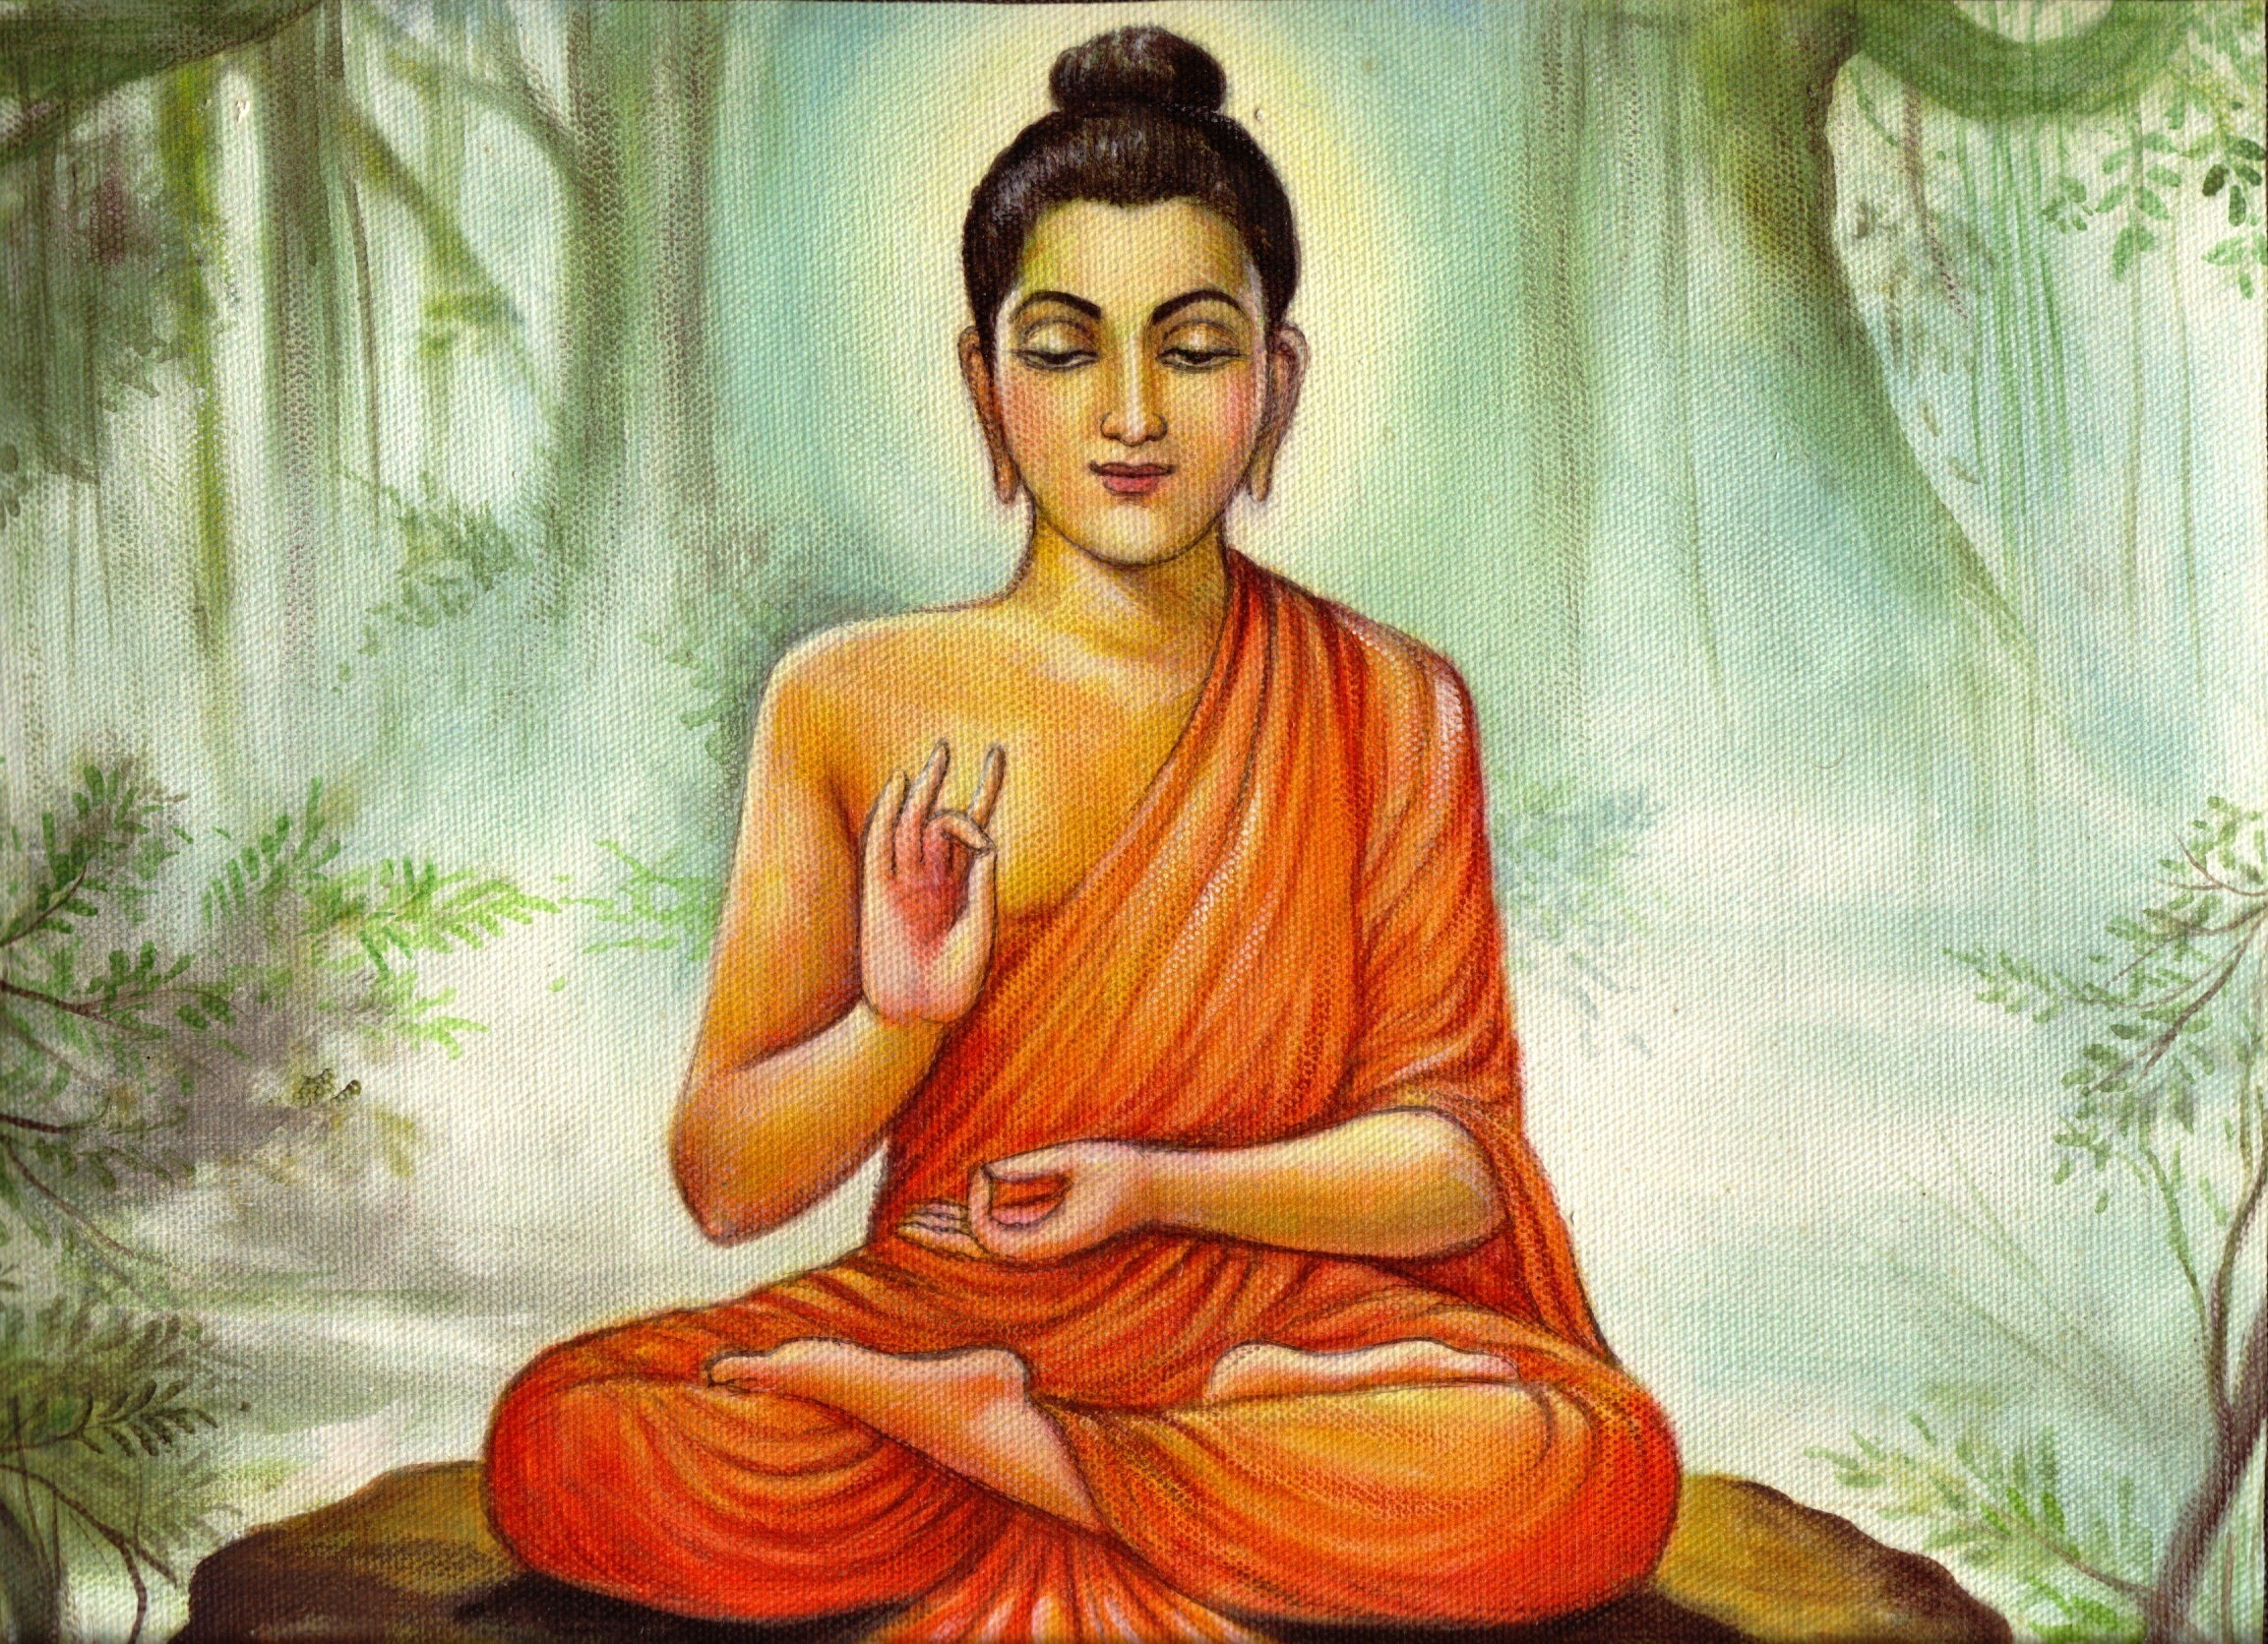 Gautam Buddha Hd Wallpapers Images Pictures Photos Download